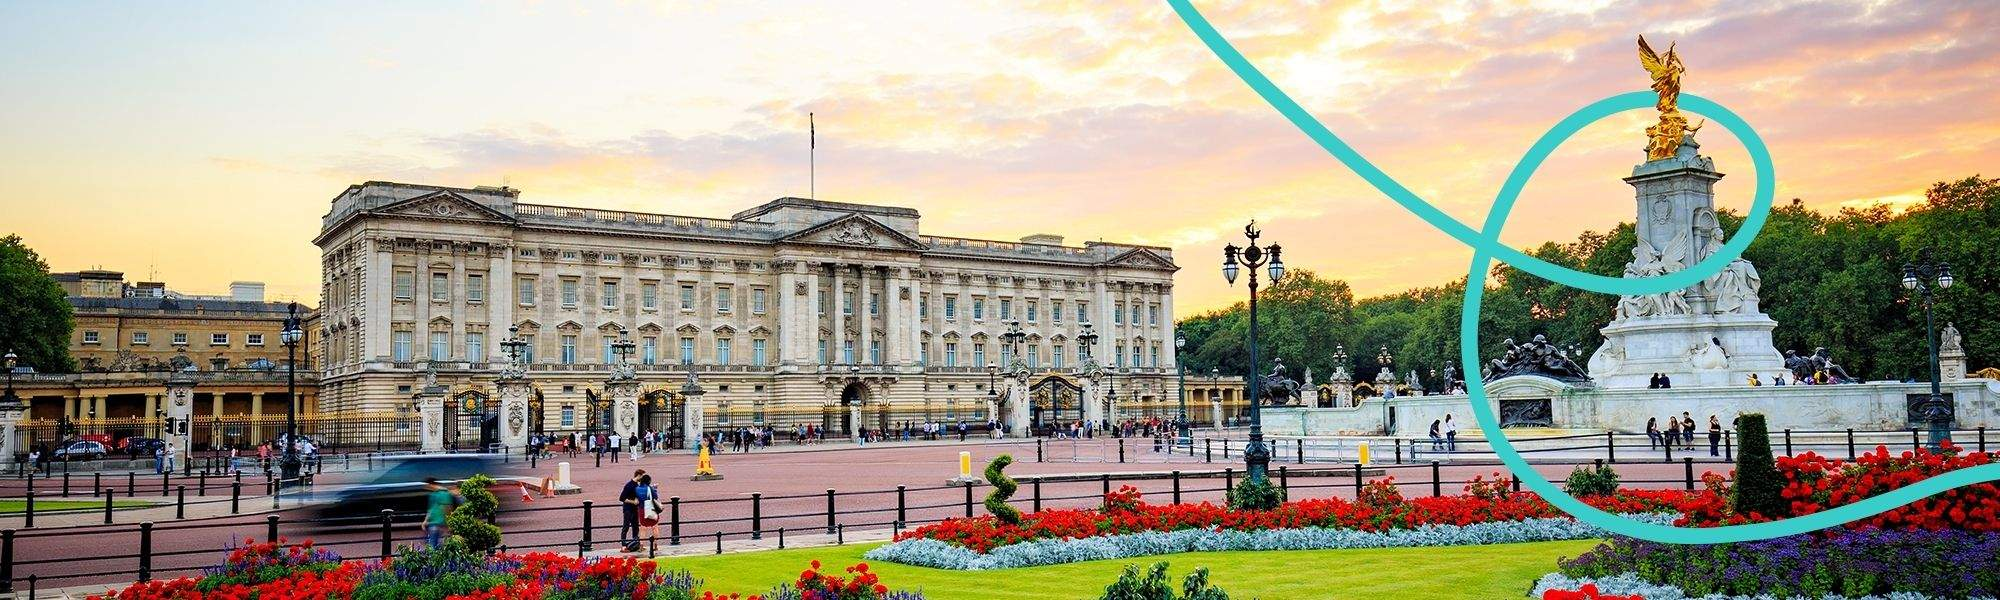 Tickets & Events FAMILY PASS MEMBER ONLY: The Queen's Gallery, Buckingham Palace, 10% off